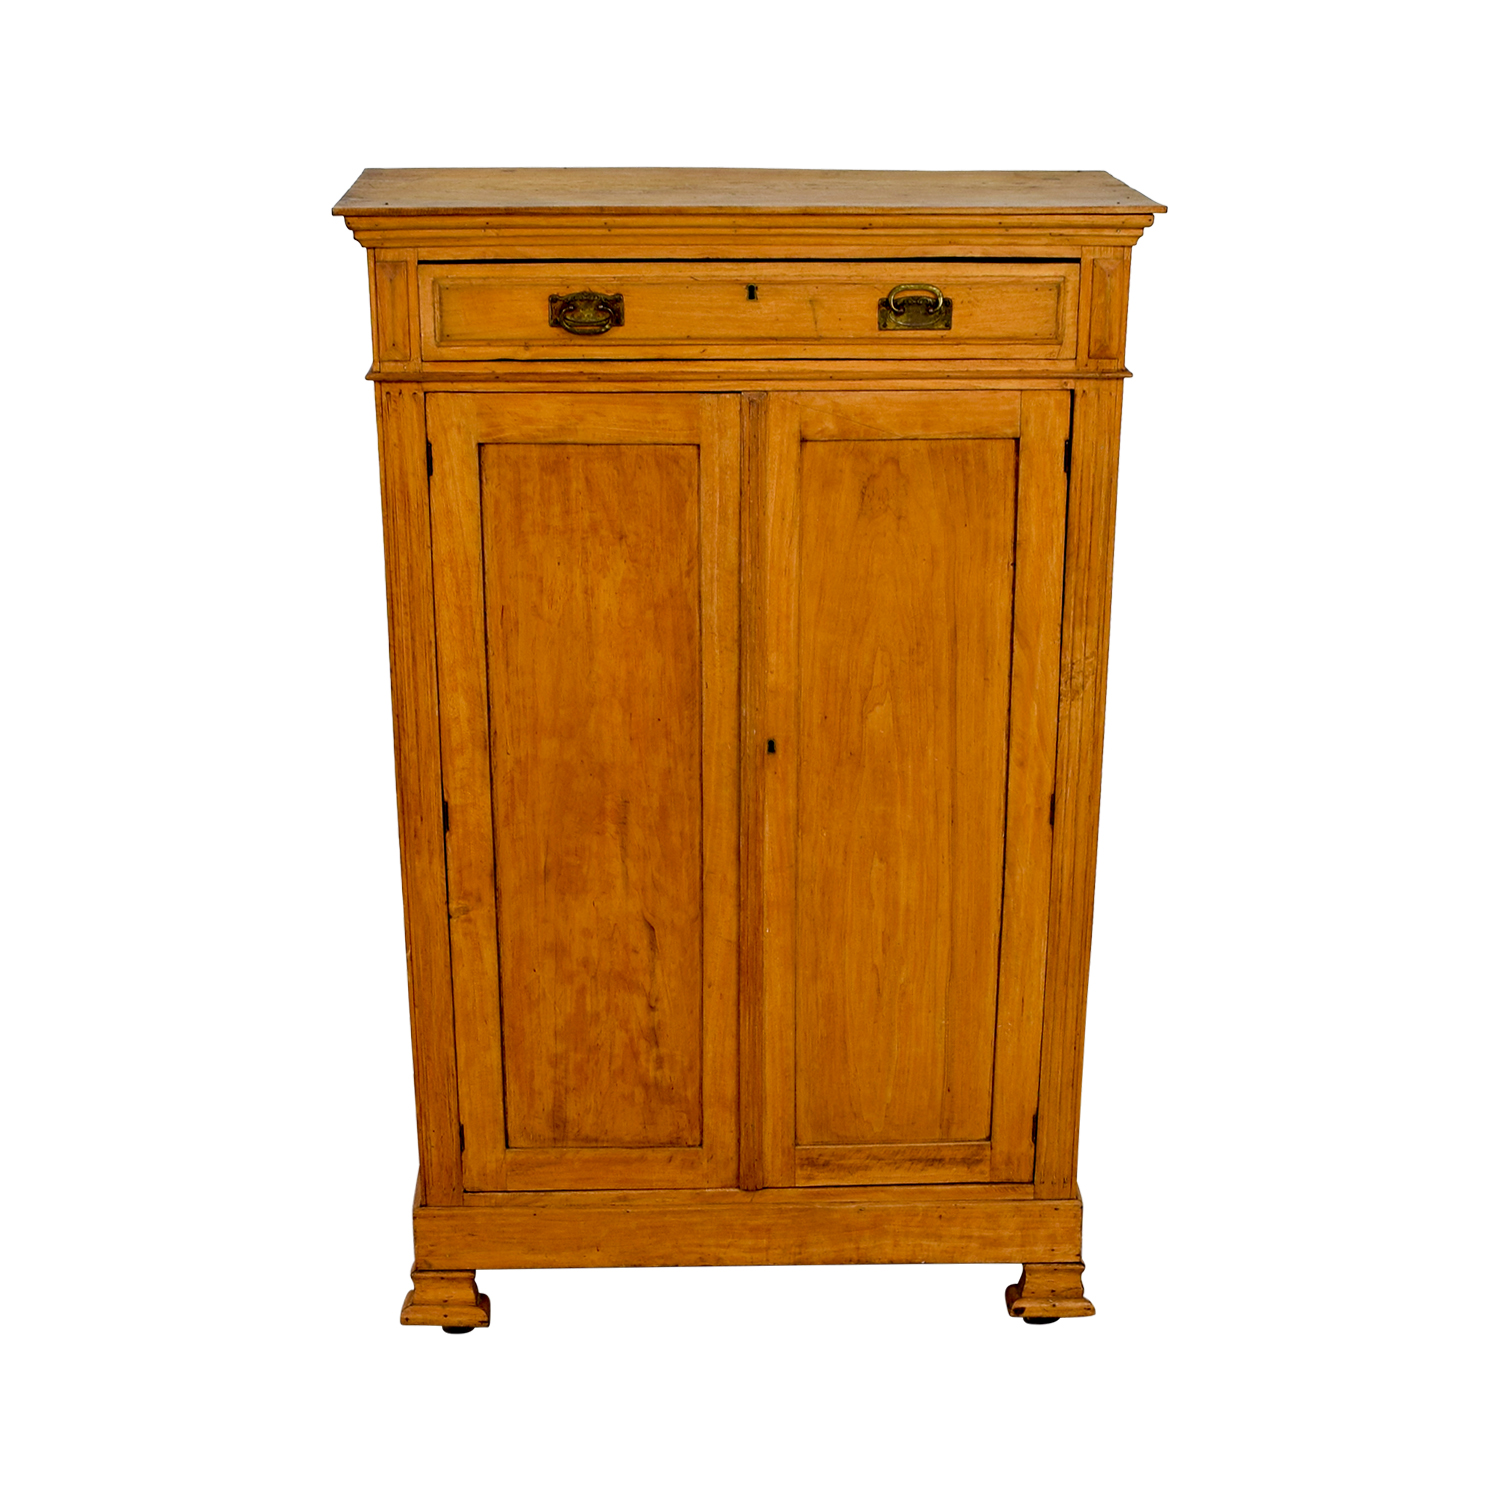 Antique Belgian Hutch Cabinet on sale